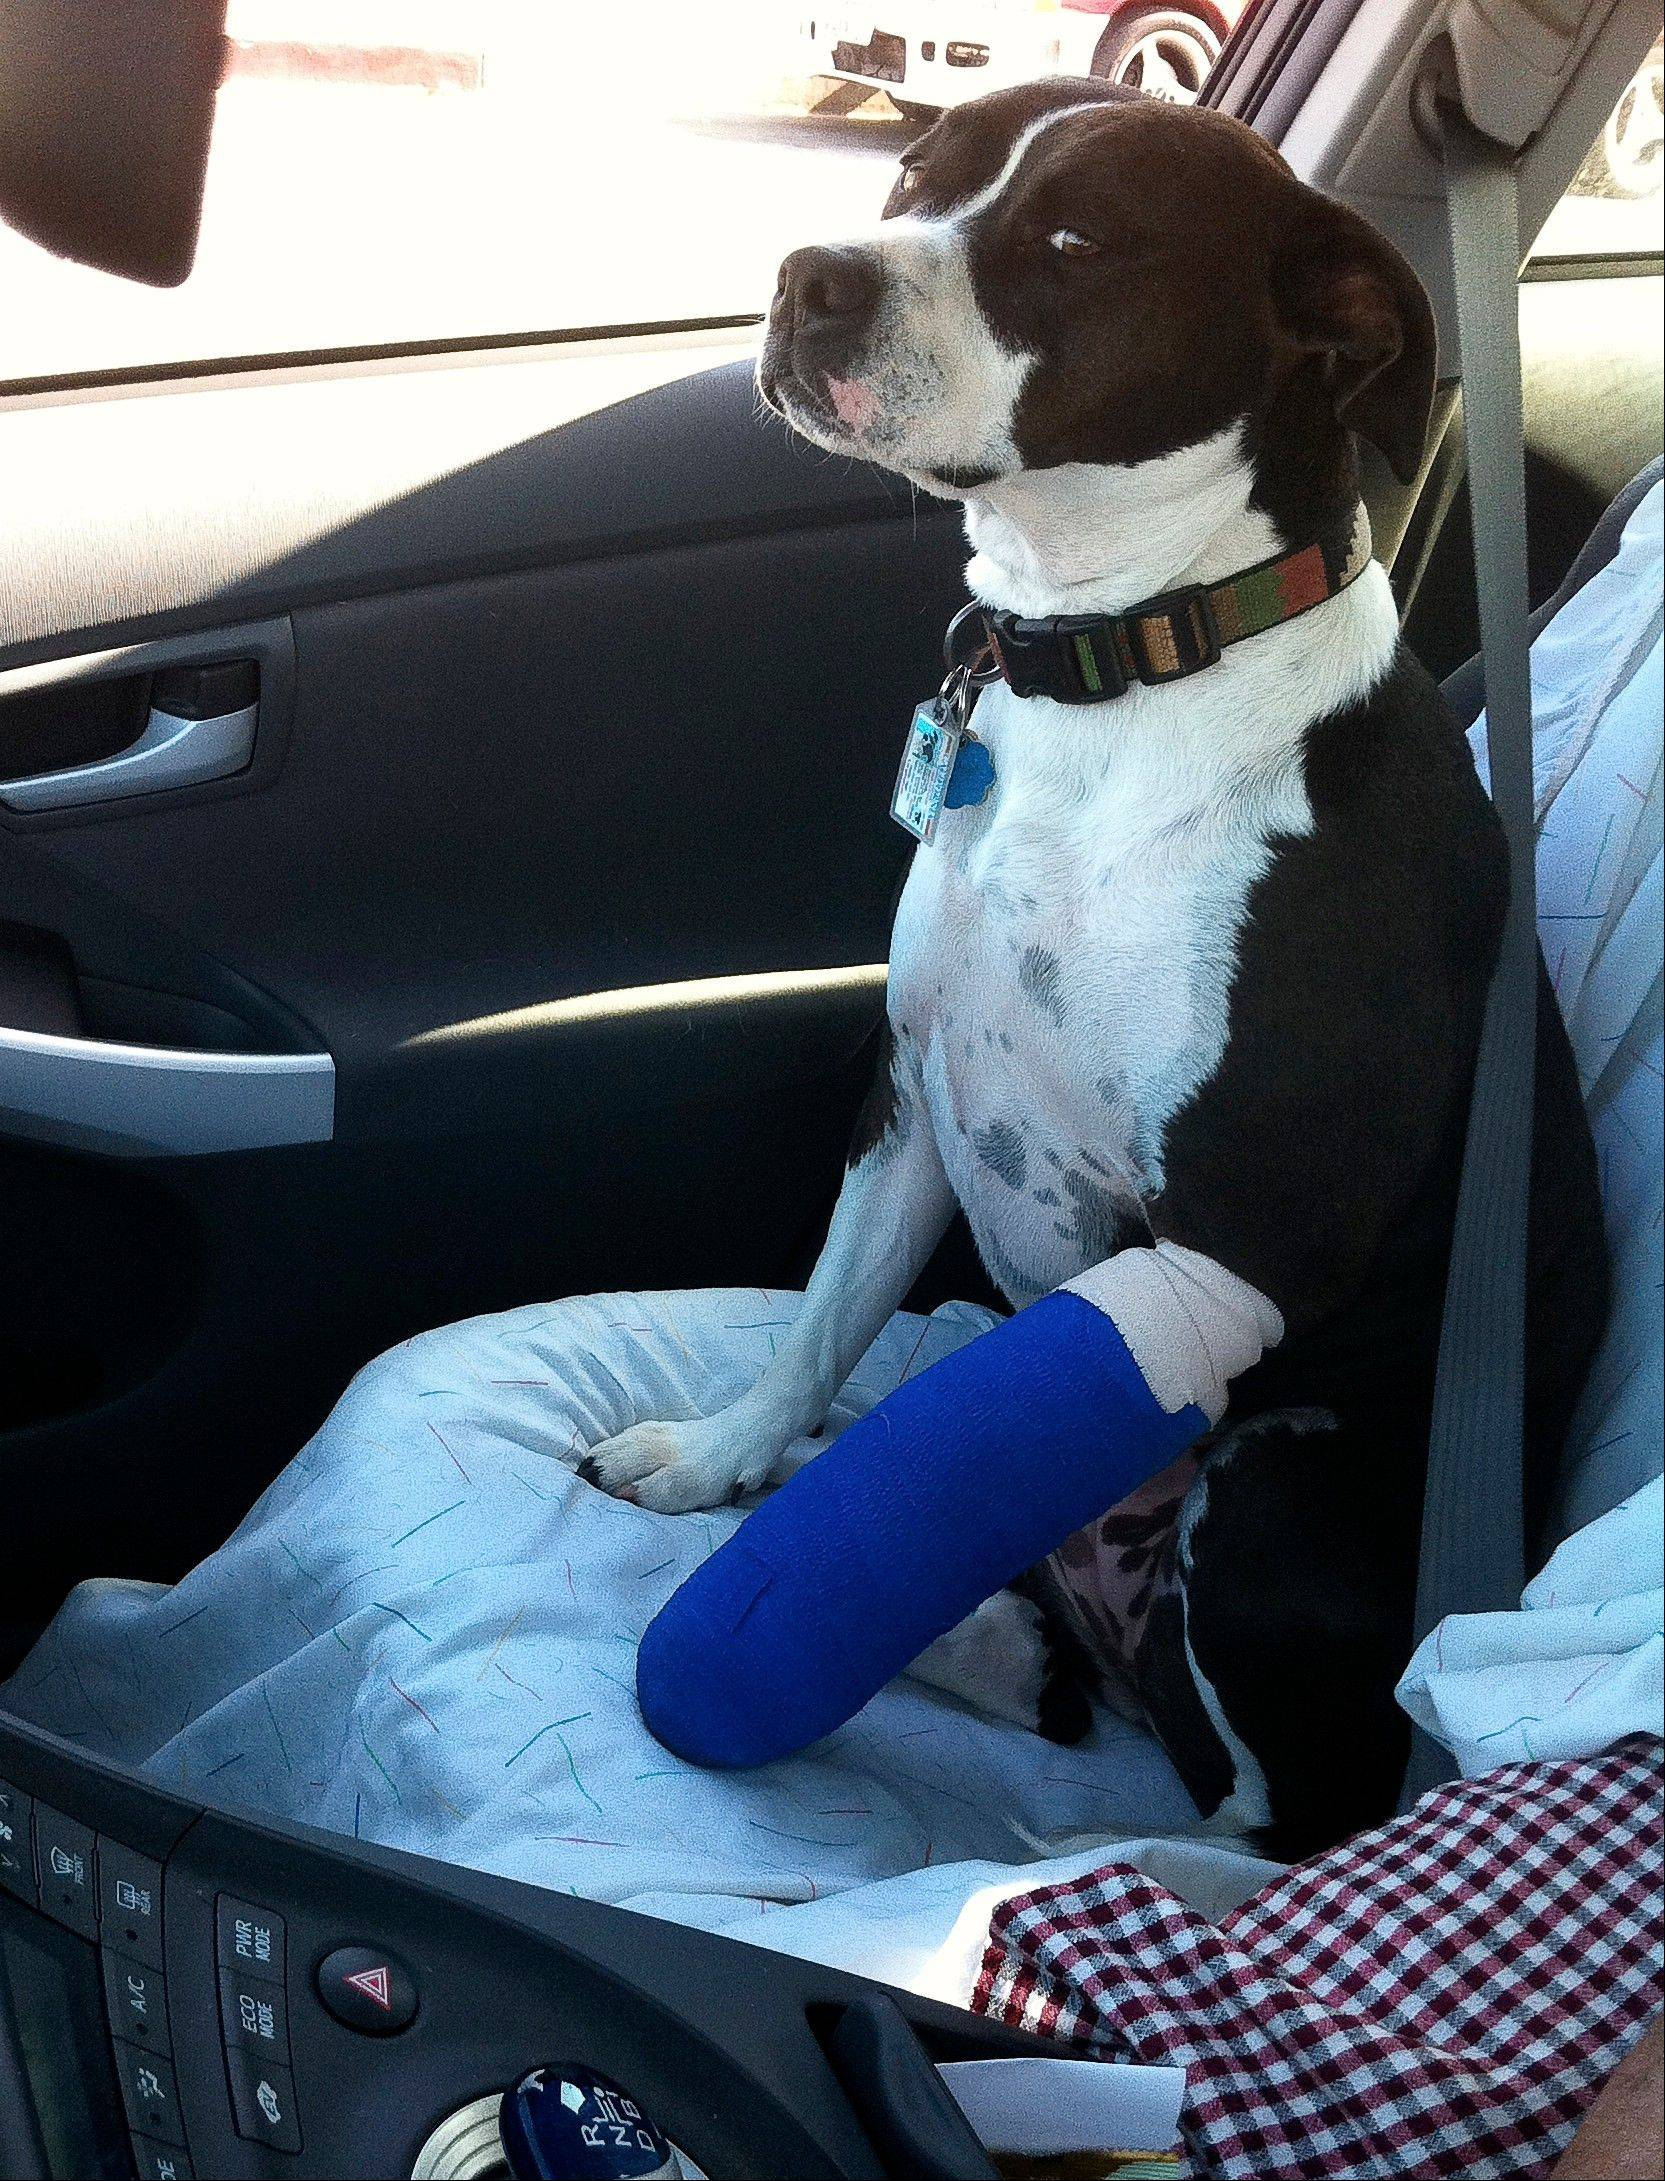 Richard Vogel�s dog Marley, a 3-year-old pit bull mix, rides home from the vet in Vogel�s vehicle wearing a cast for a broken toe, in Los Angeles. Marley broke her toe after chasing after a squirrel in a dog park.